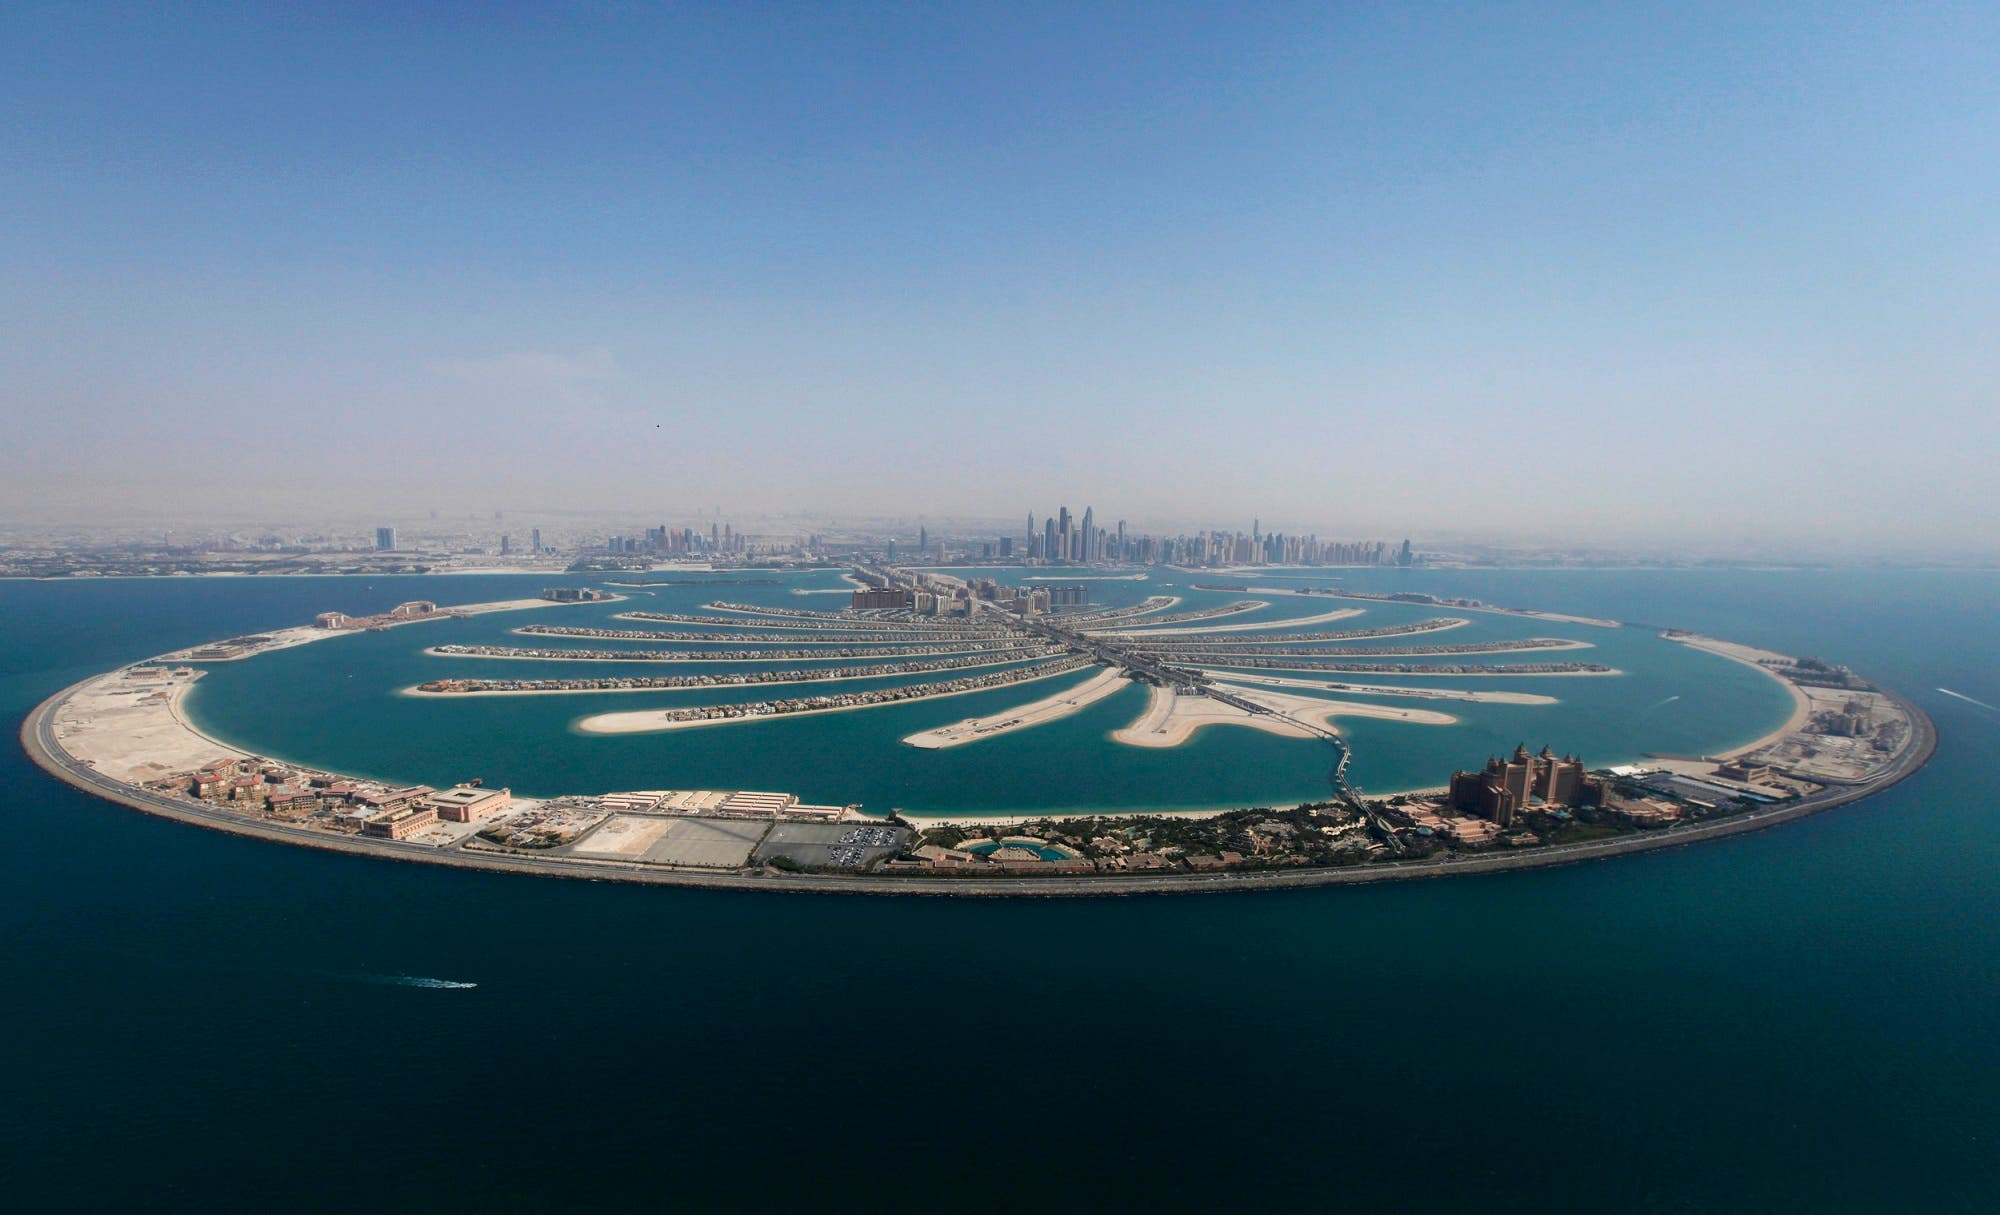 An aerial view of The Palm Jumeirah is seen in Dubai, August 31, 2012. (File Photo: Reuters)